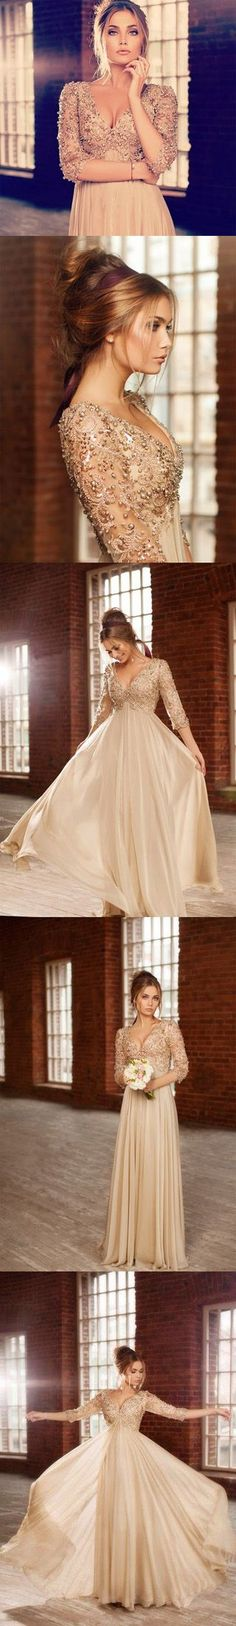 www.diyouth.com 2015 Custom Made Beadings Chiffon Long Sleeves Backless Evening Dress Formal Gowns, beaded prom dress, beading evening dresses, backless cocktail dress, party dress open back